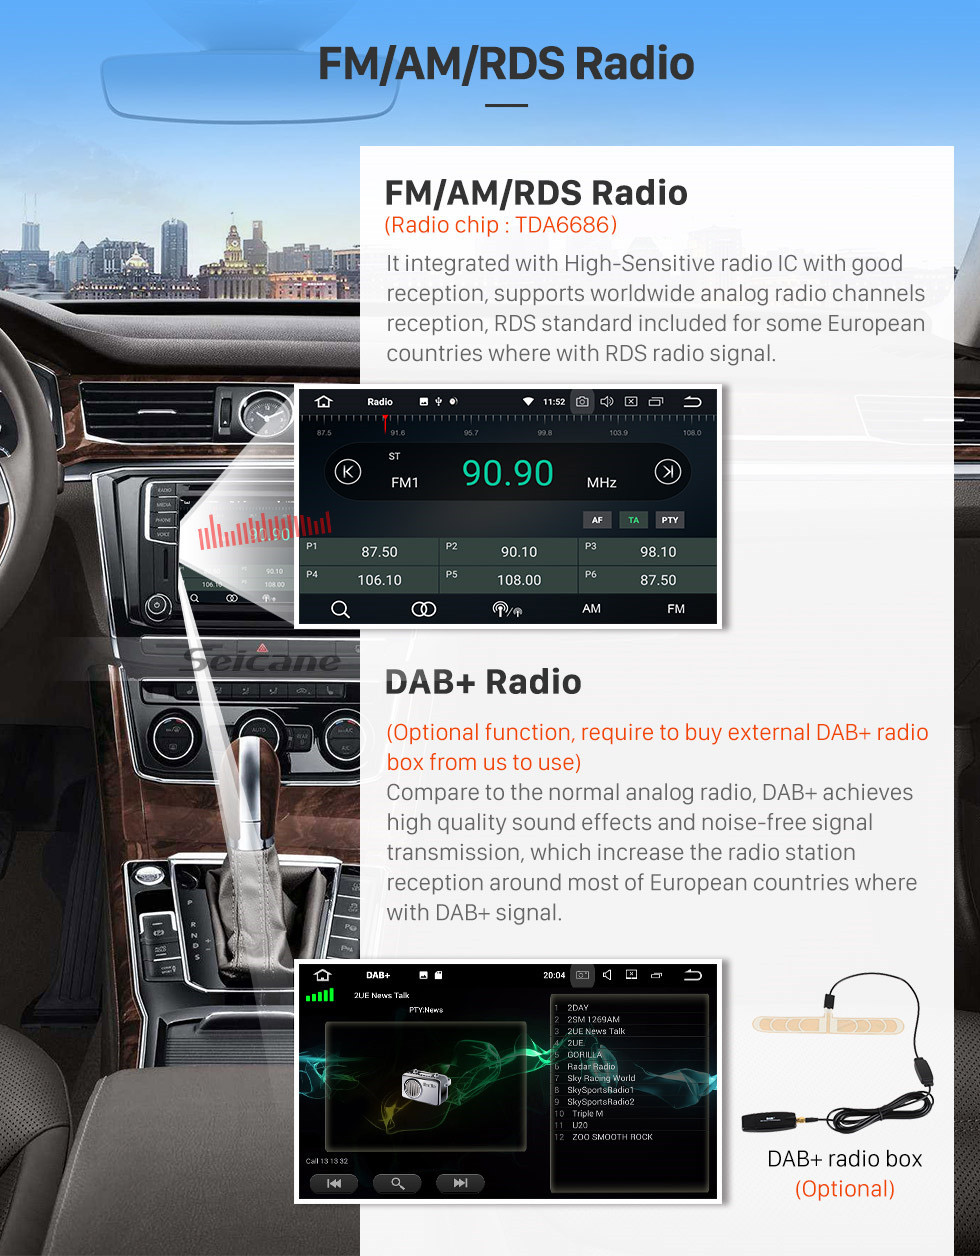 Android 711 Radio Dvd Gps Navigation Stereo For 2004 2009 Mazda 3 Fm Products Sale 1 20 High Quality Images Are Product Highlight